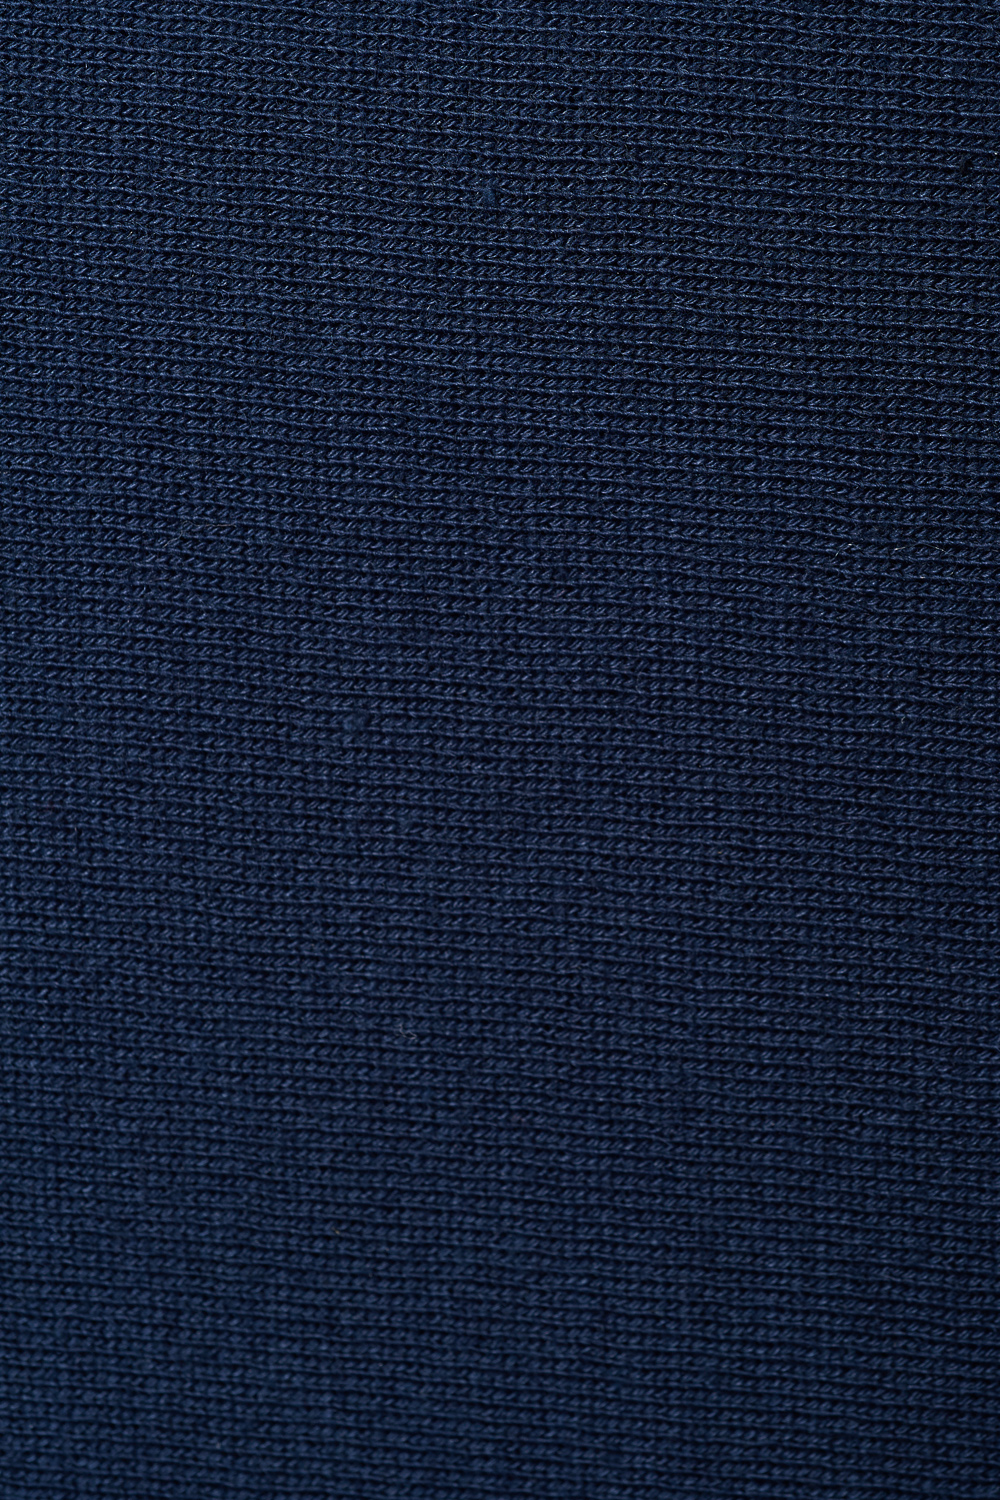 Navy Flex Fleece.JPG